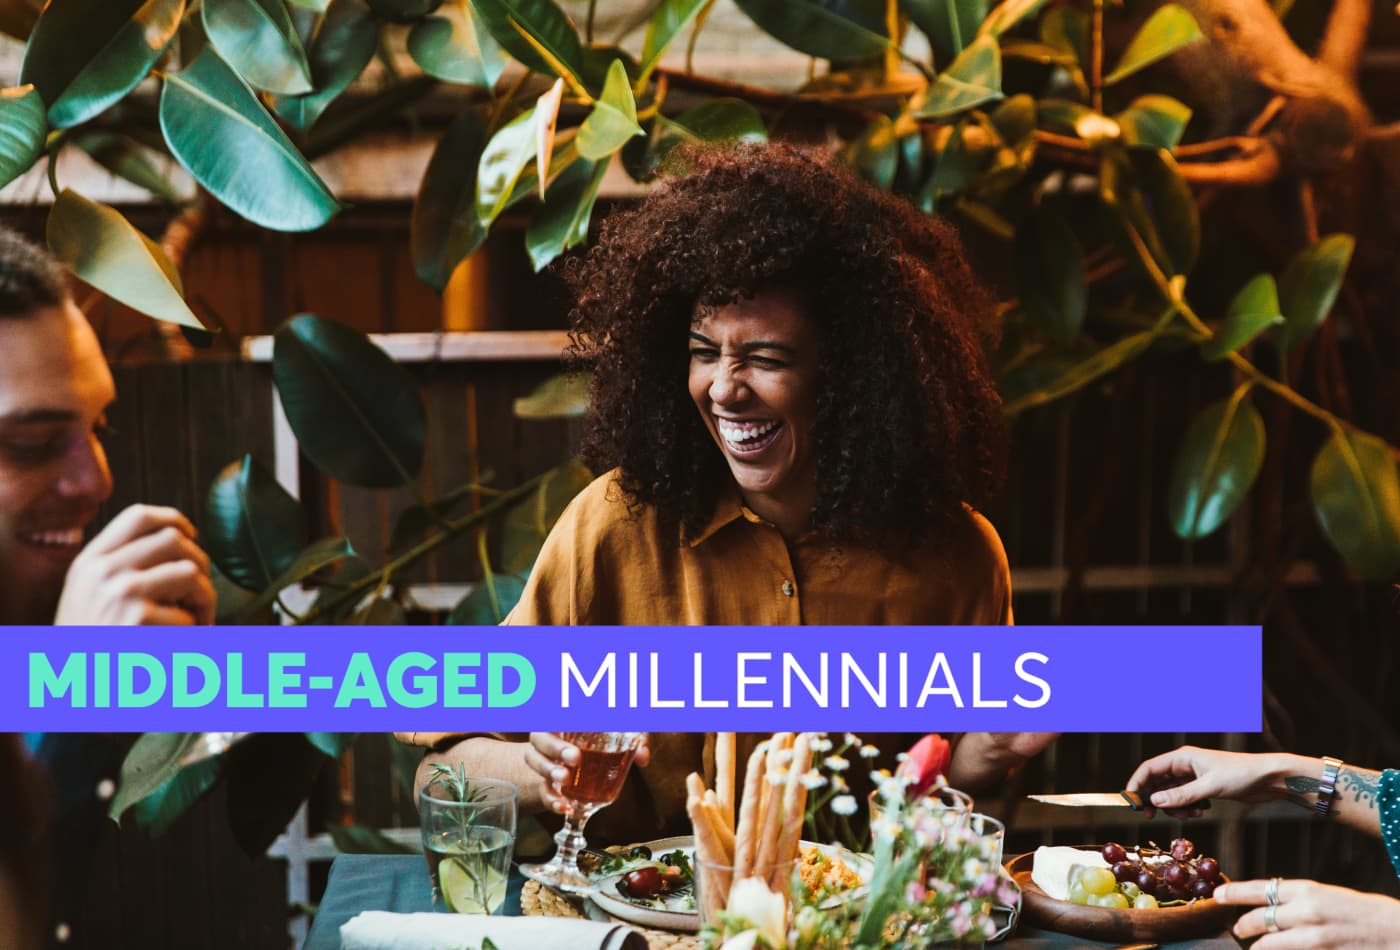 Millennials are known as avocado toast-loving, latte-swilling spendthrifts—here's the reality